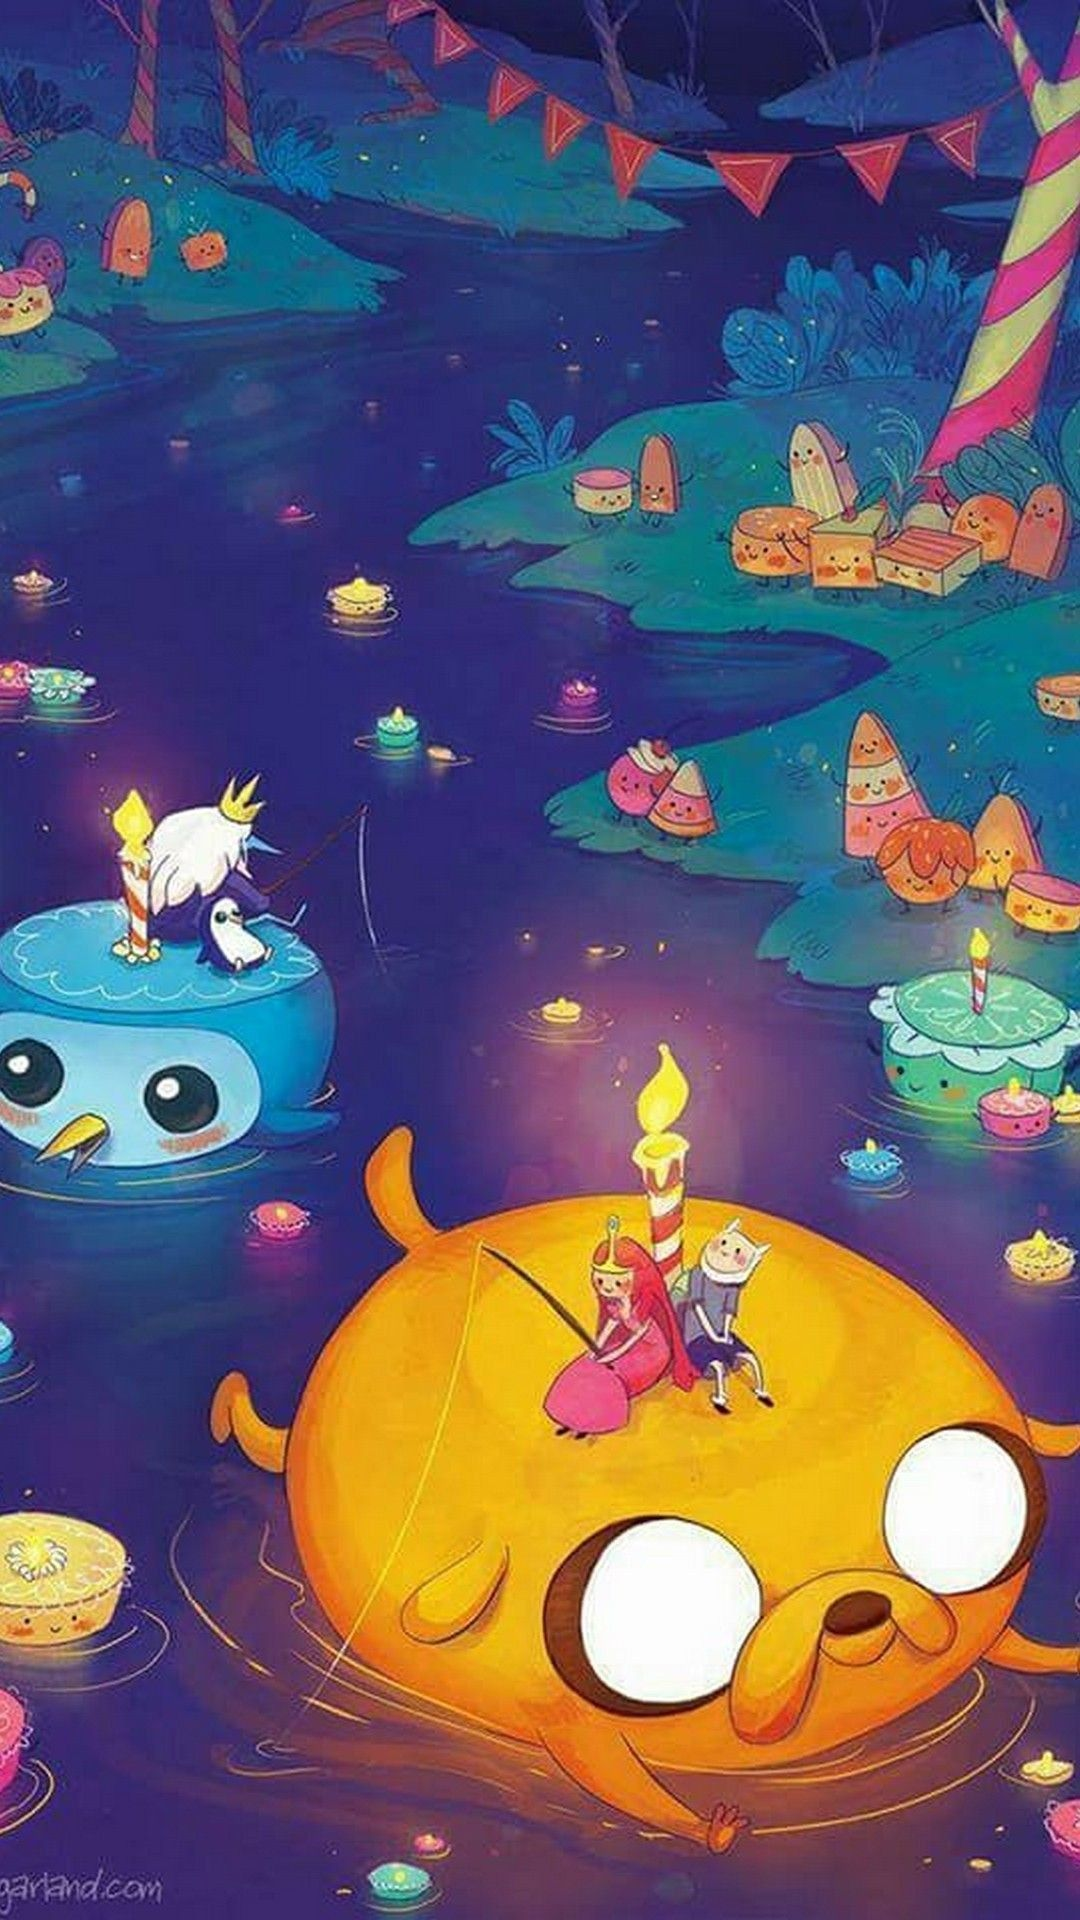 Aesthetic Adventure Time Hd Wallpaper Android Adventure Time Wallpaper Adventure Time Iphone Wallpaper Adventure Time Background